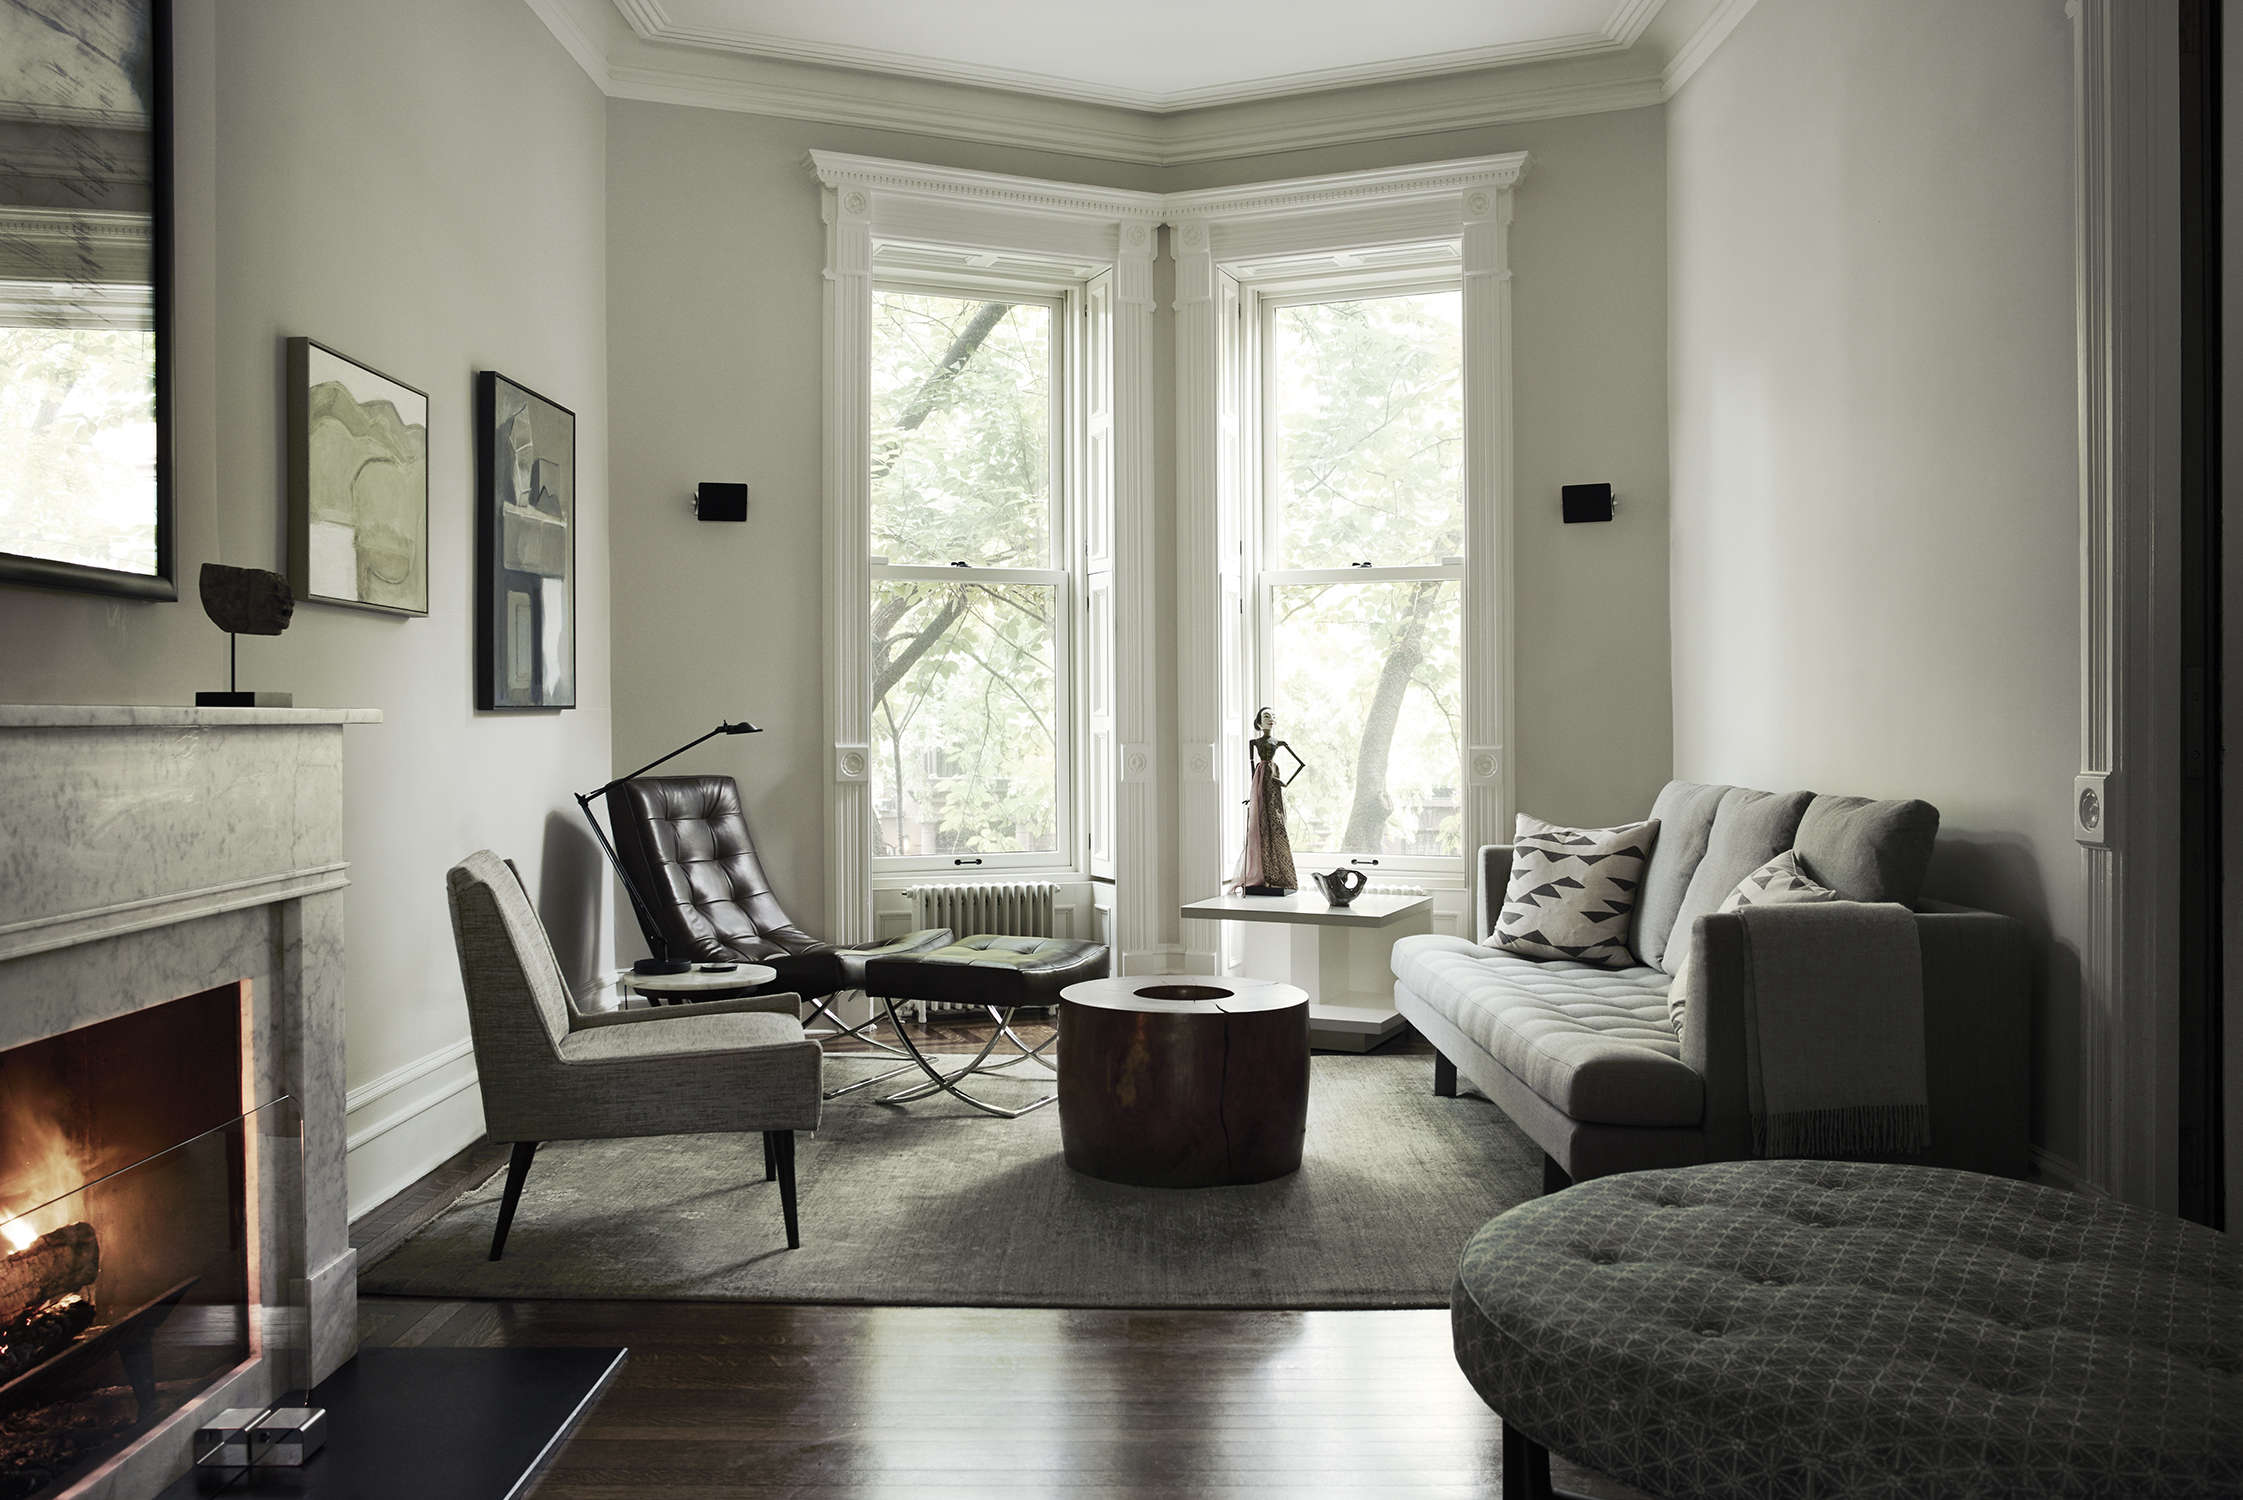 Serenity Now Creating Calm and Luxe in a Brooklyn